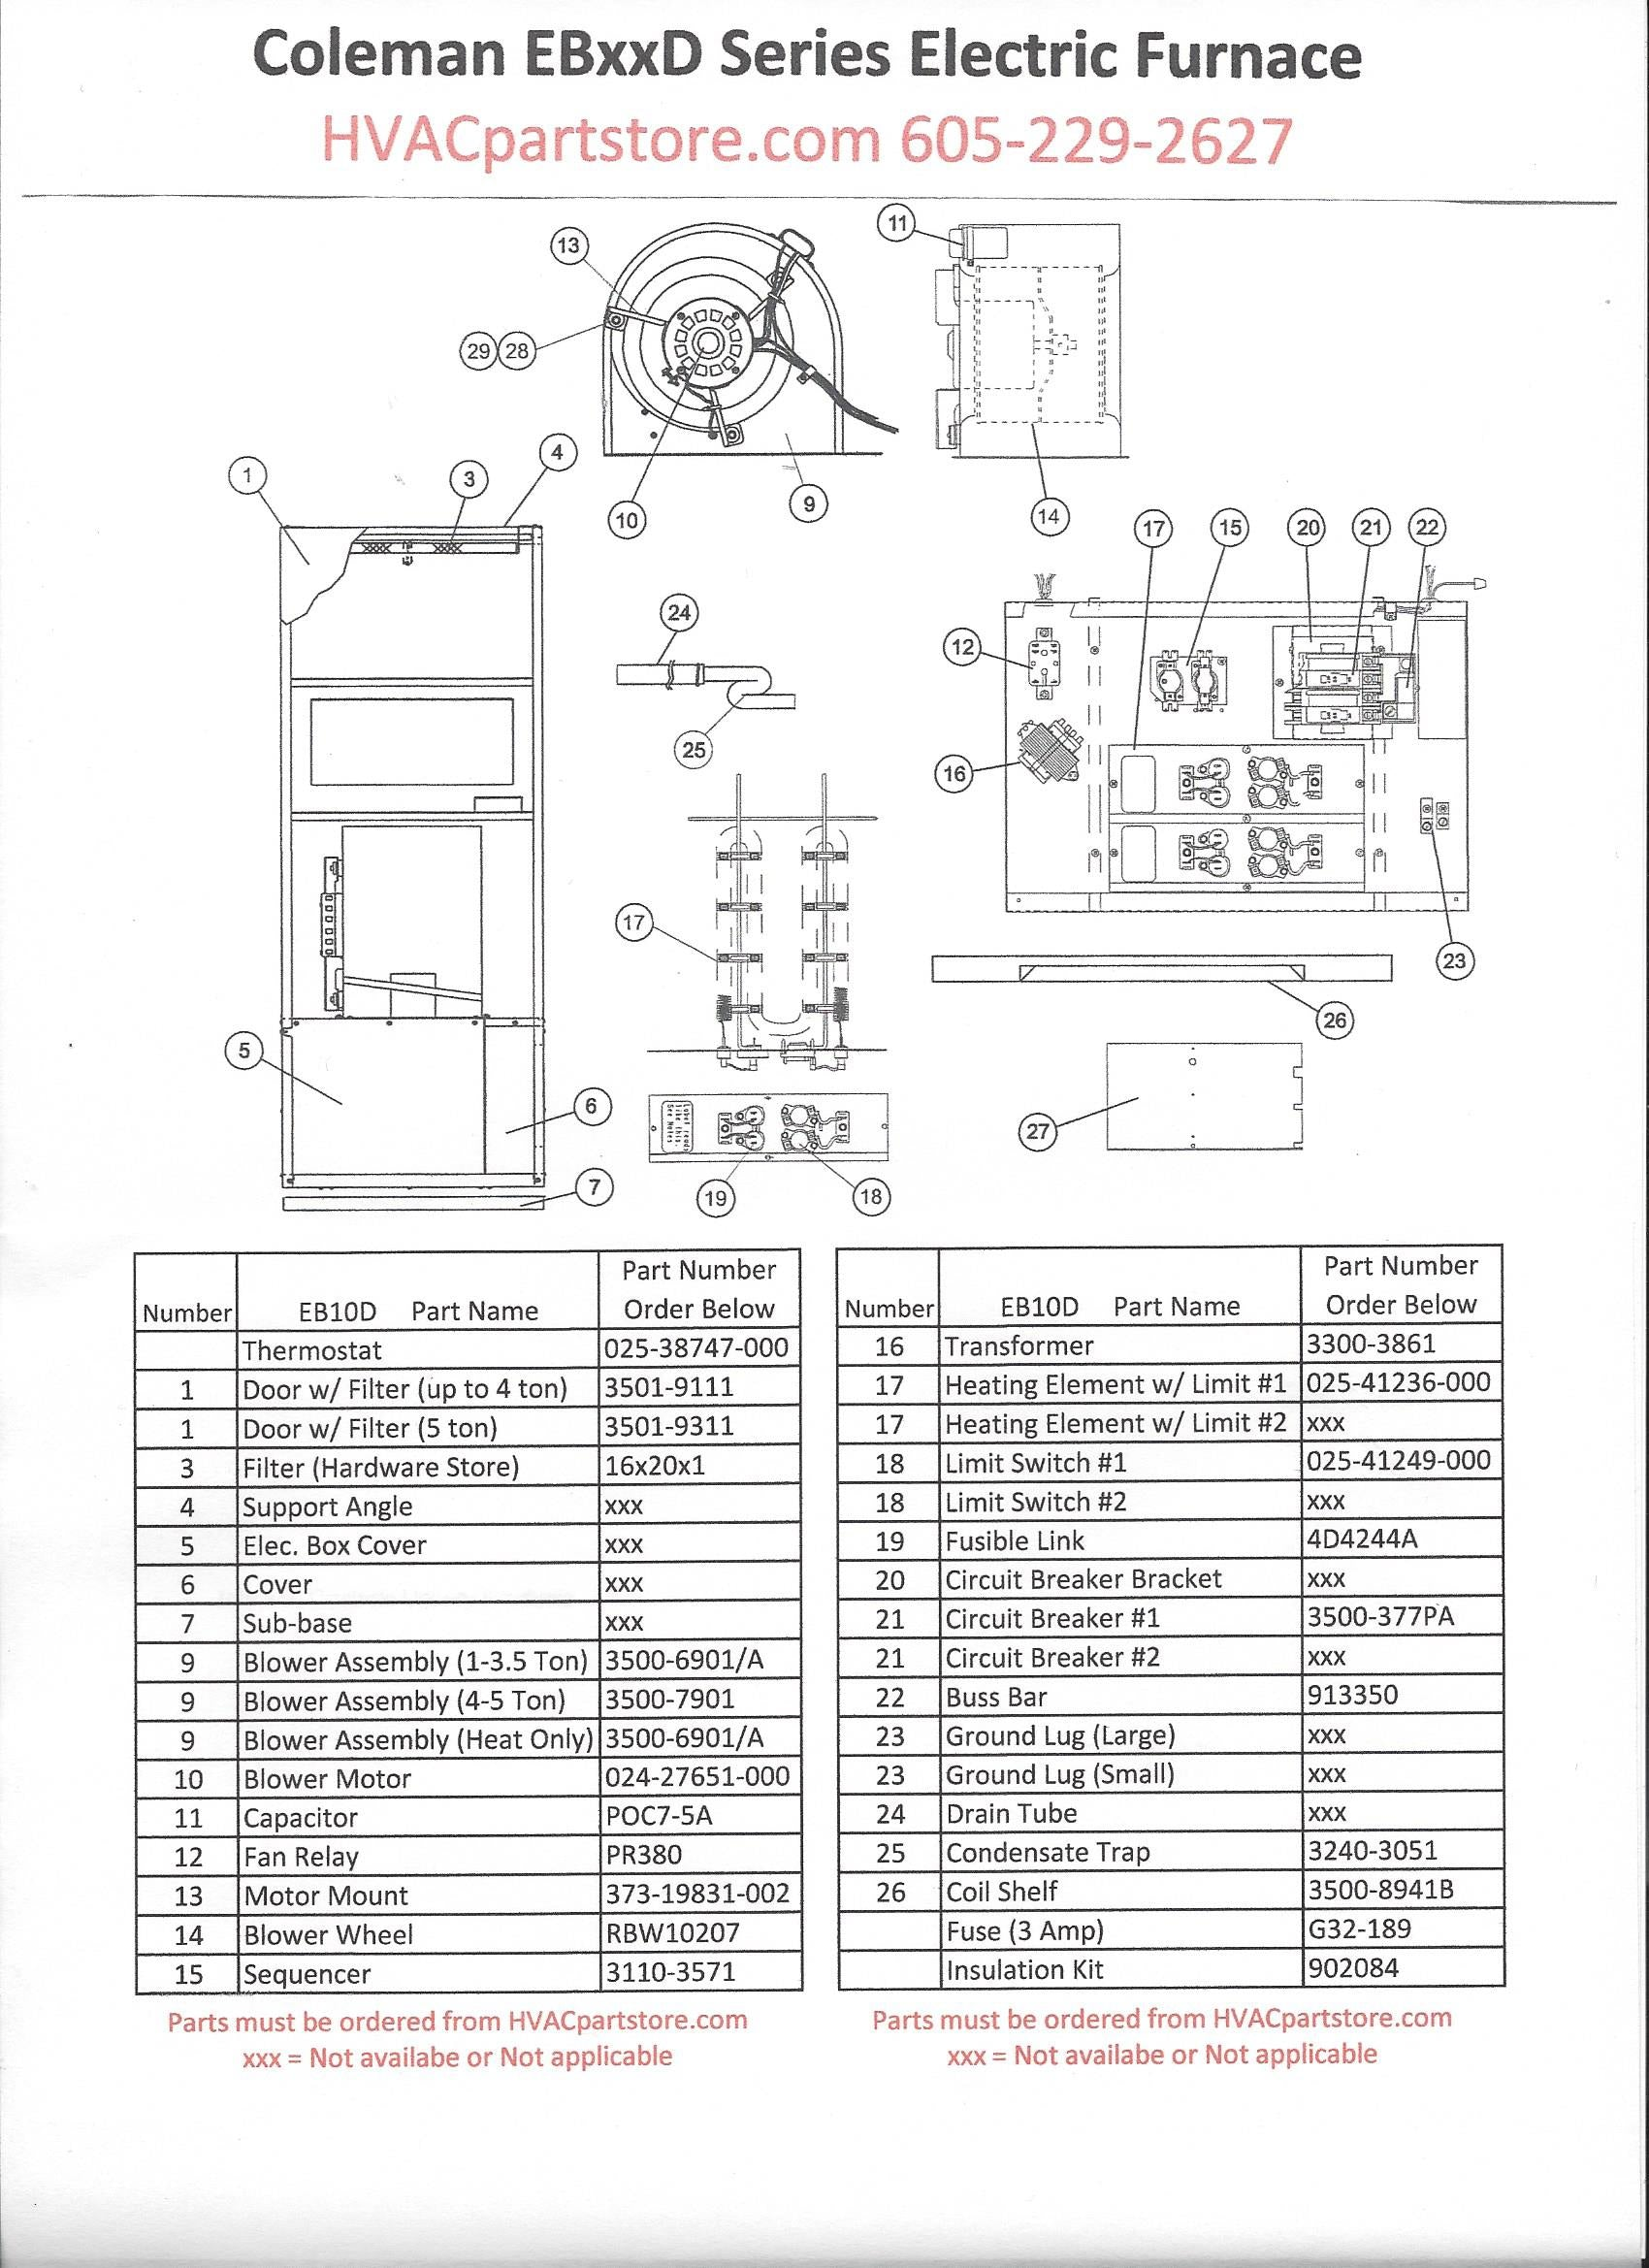 Wiring Manual PDF: 10kw Electric Heater Wiring Diagram